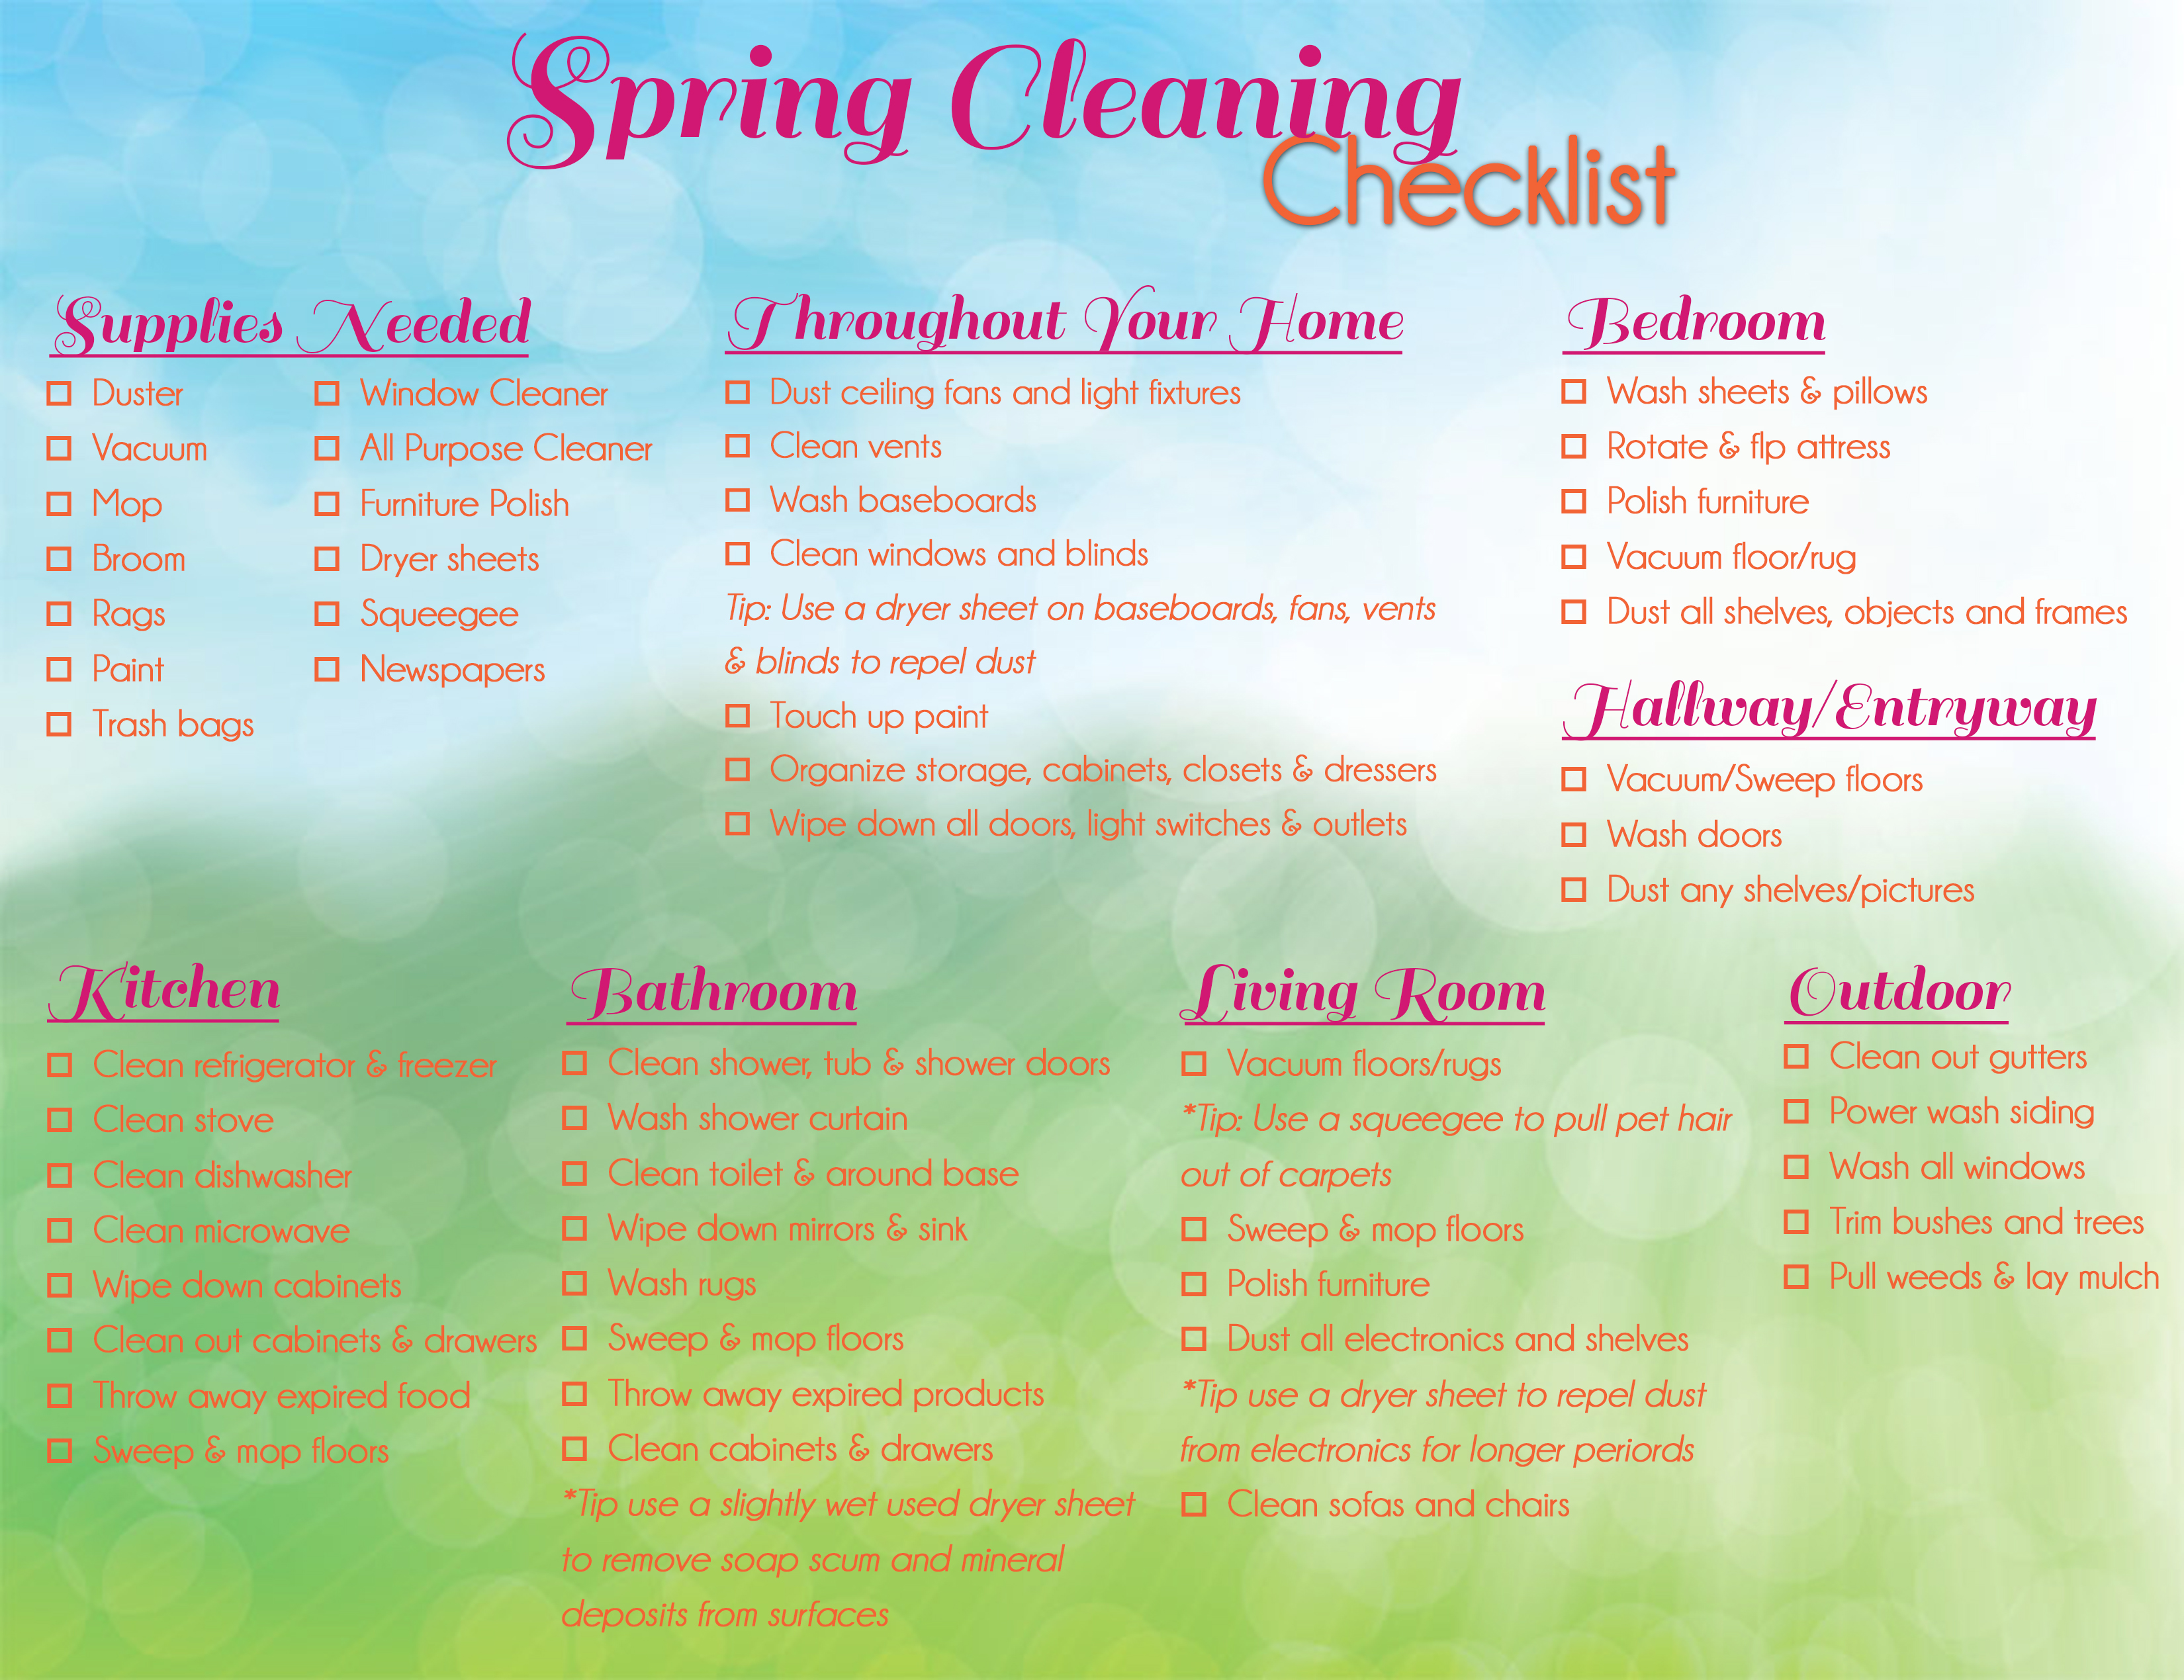 Spring Cleaning Checklist Minteer Team Real Estate – Sample Spring Cleaning Checklist